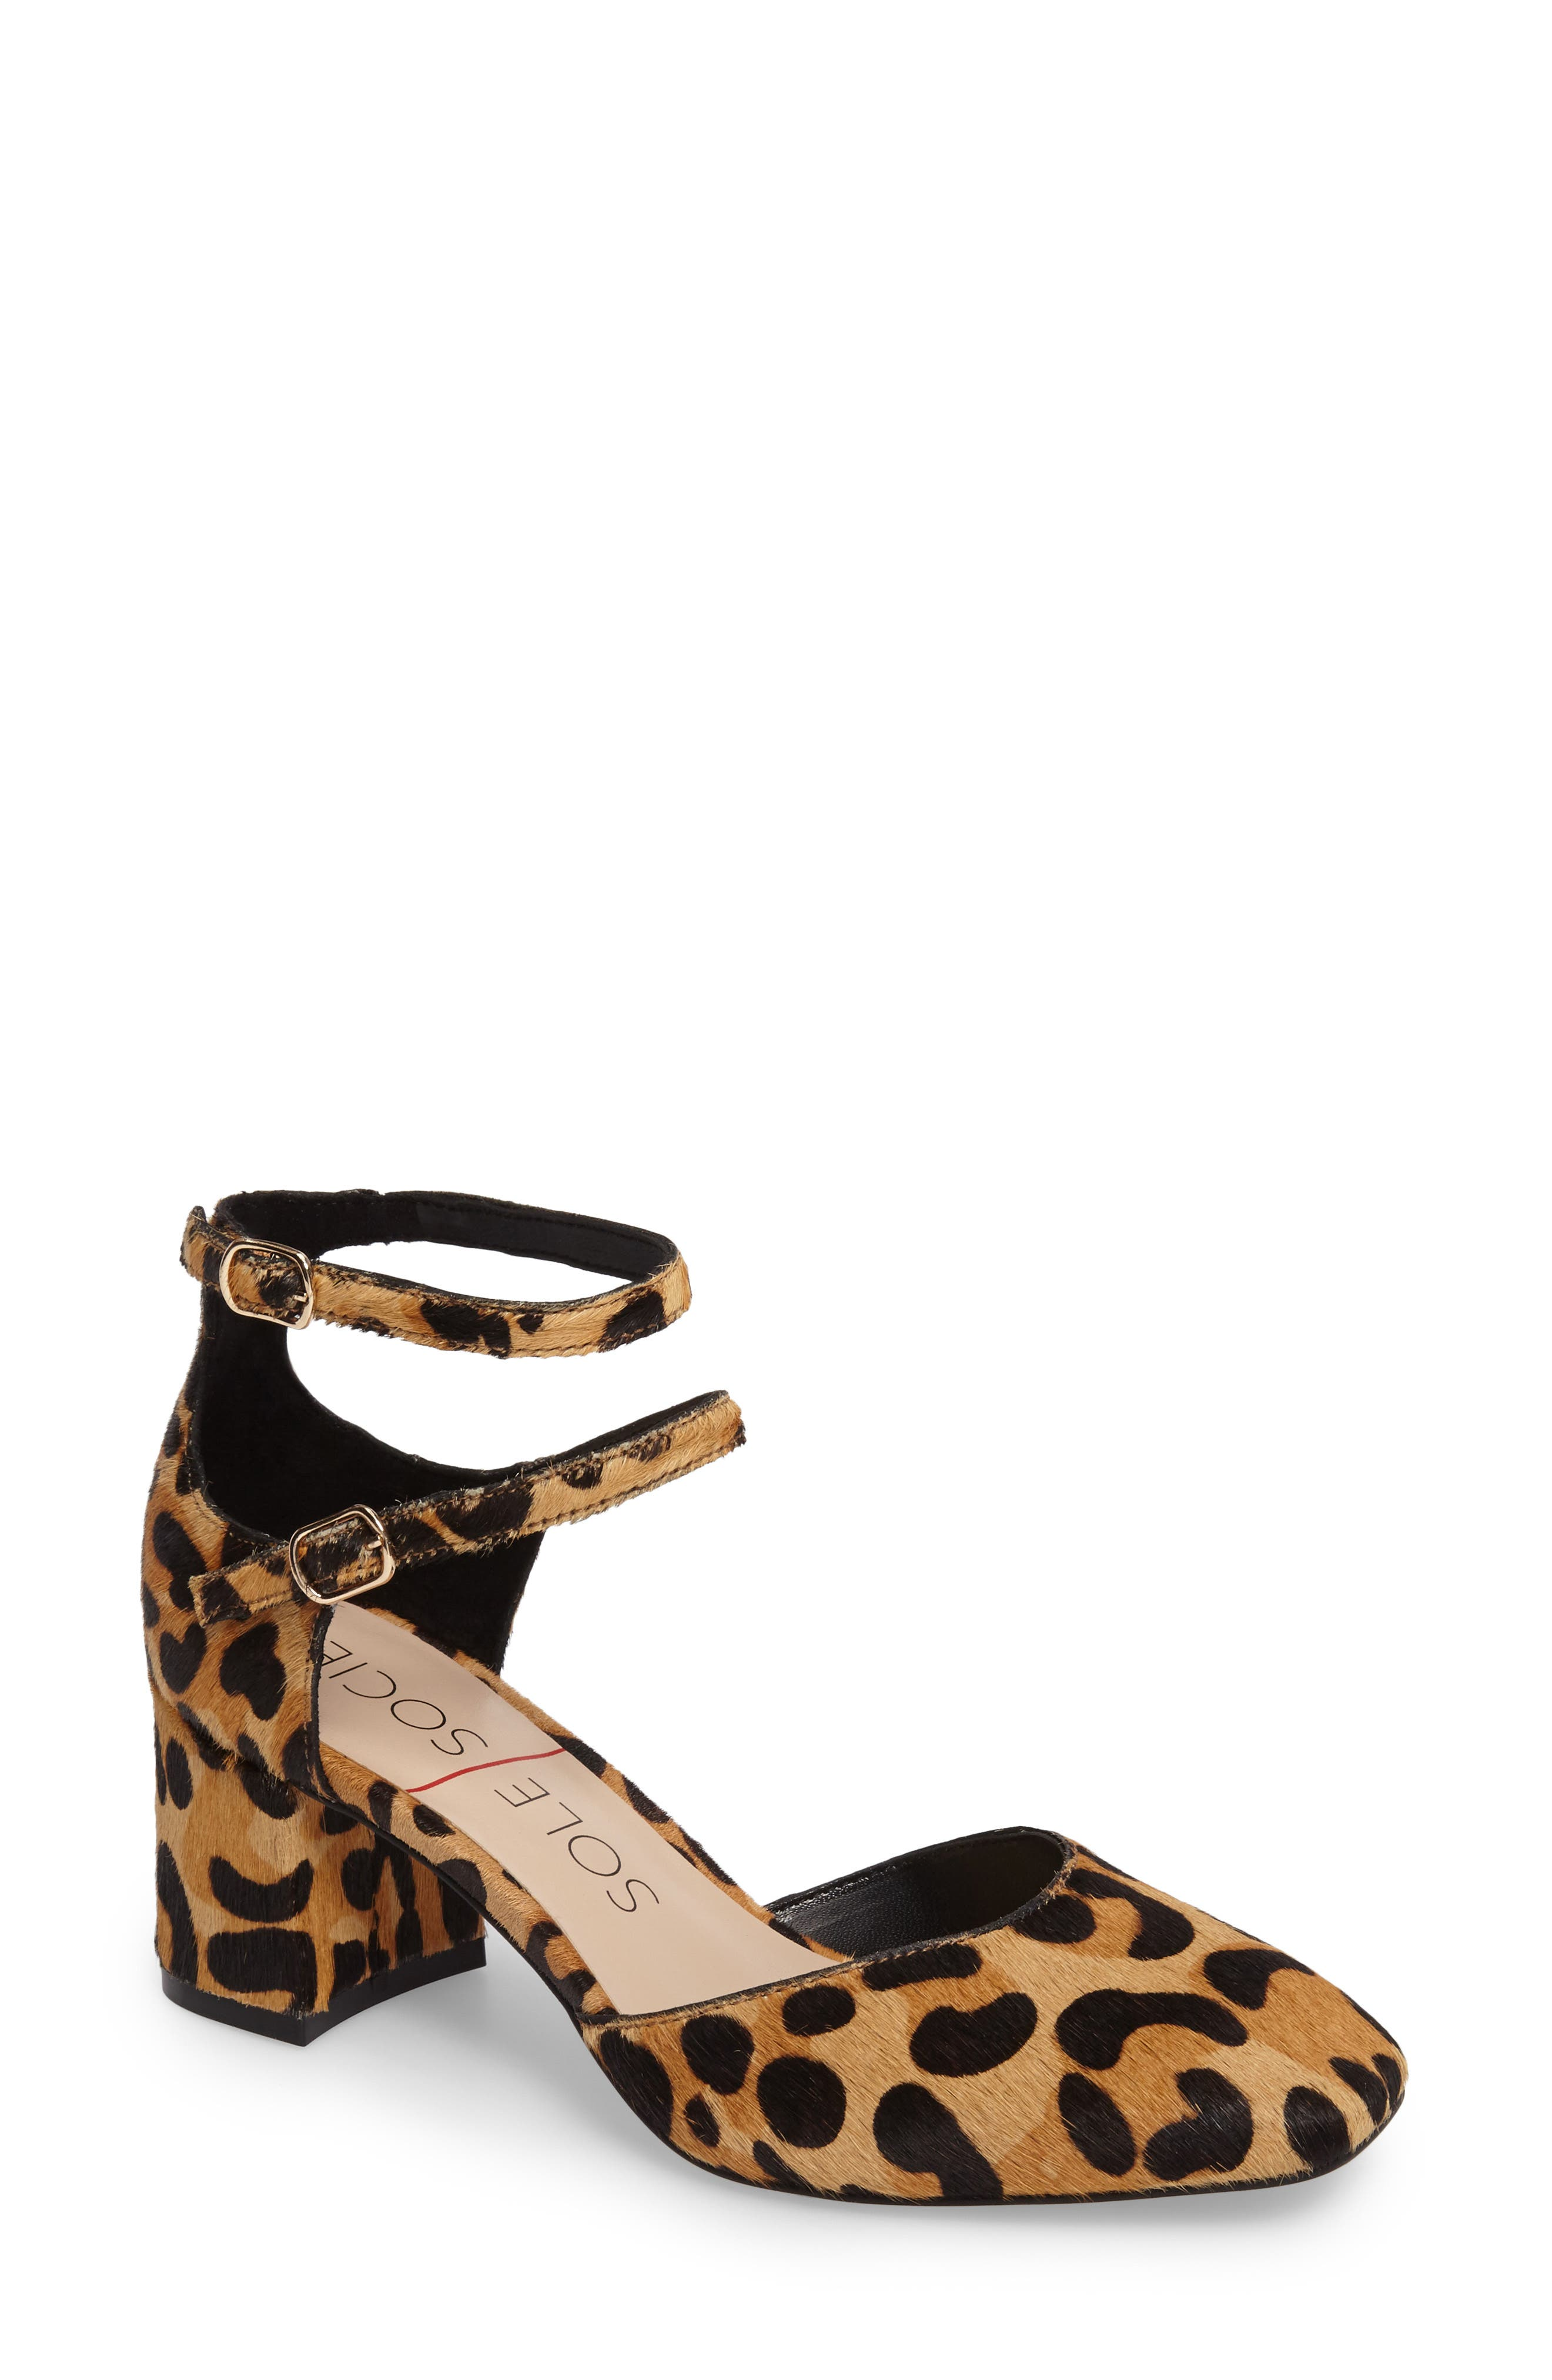 Selby Double Strap Pump,                             Main thumbnail 1, color,                             Leopard Haircalf